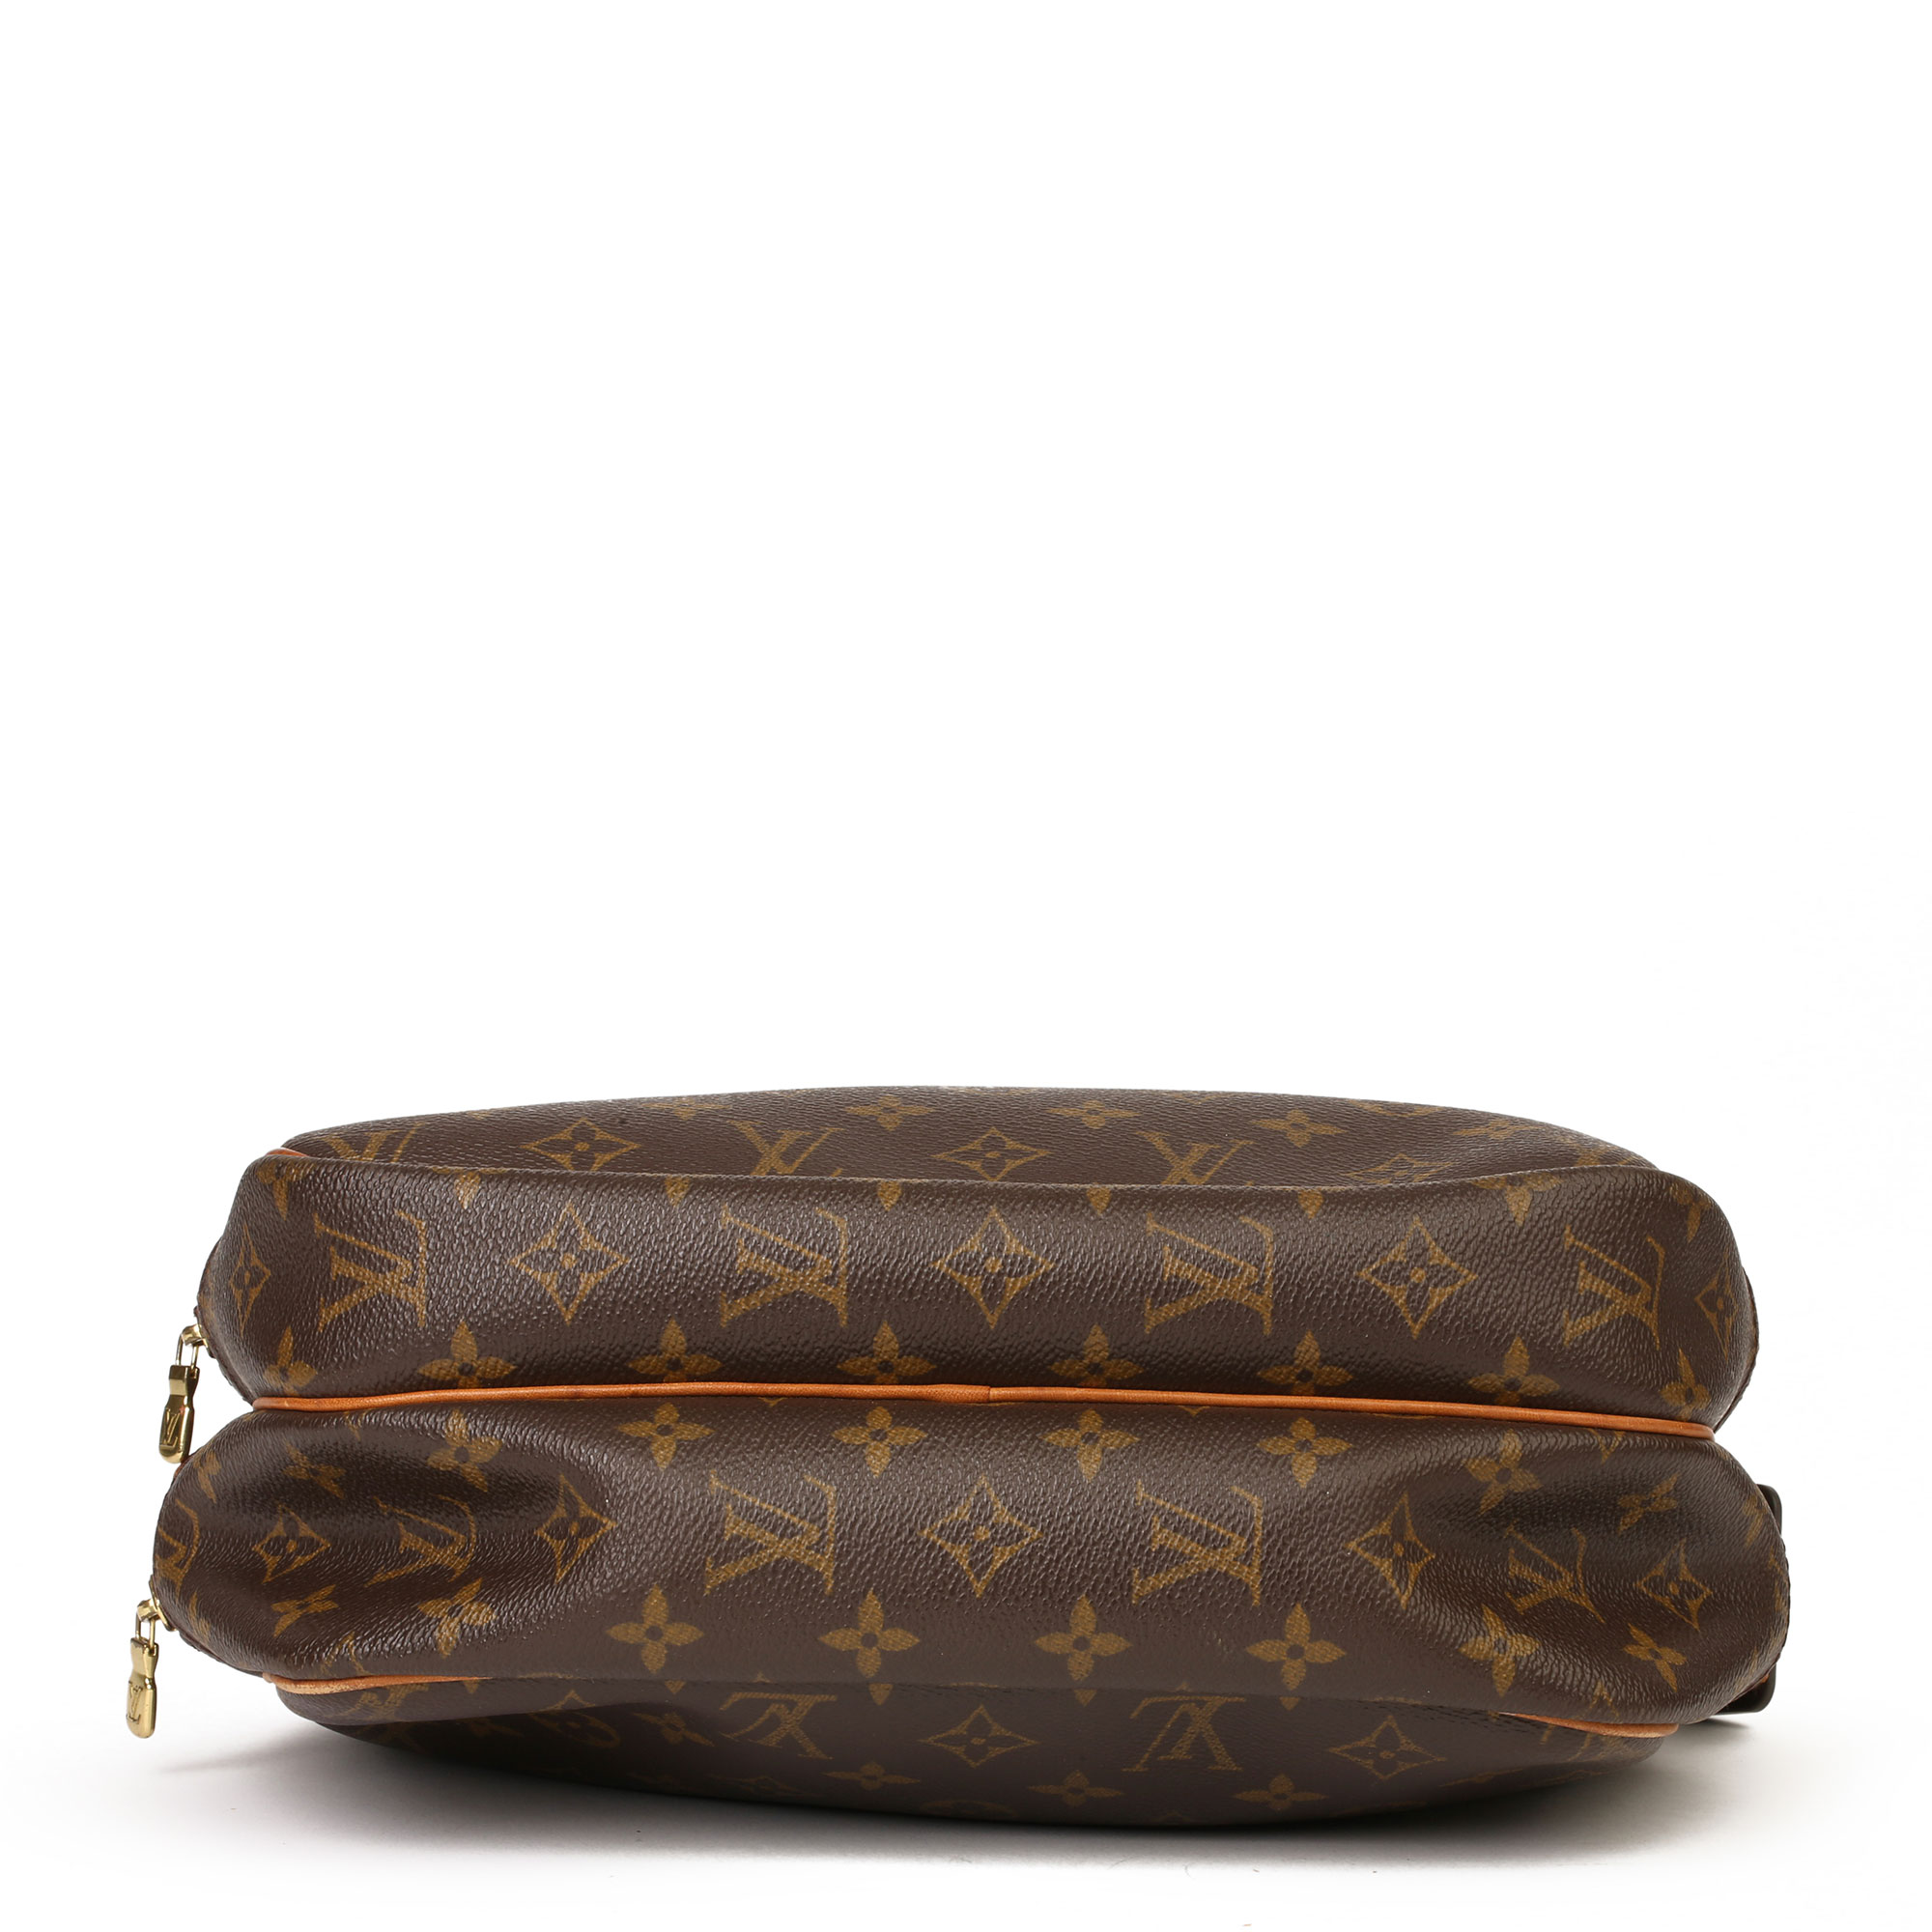 Louis Vuitton Brown Monogram Coated Canvas Vintage Reporter PM - Image 8 of 11